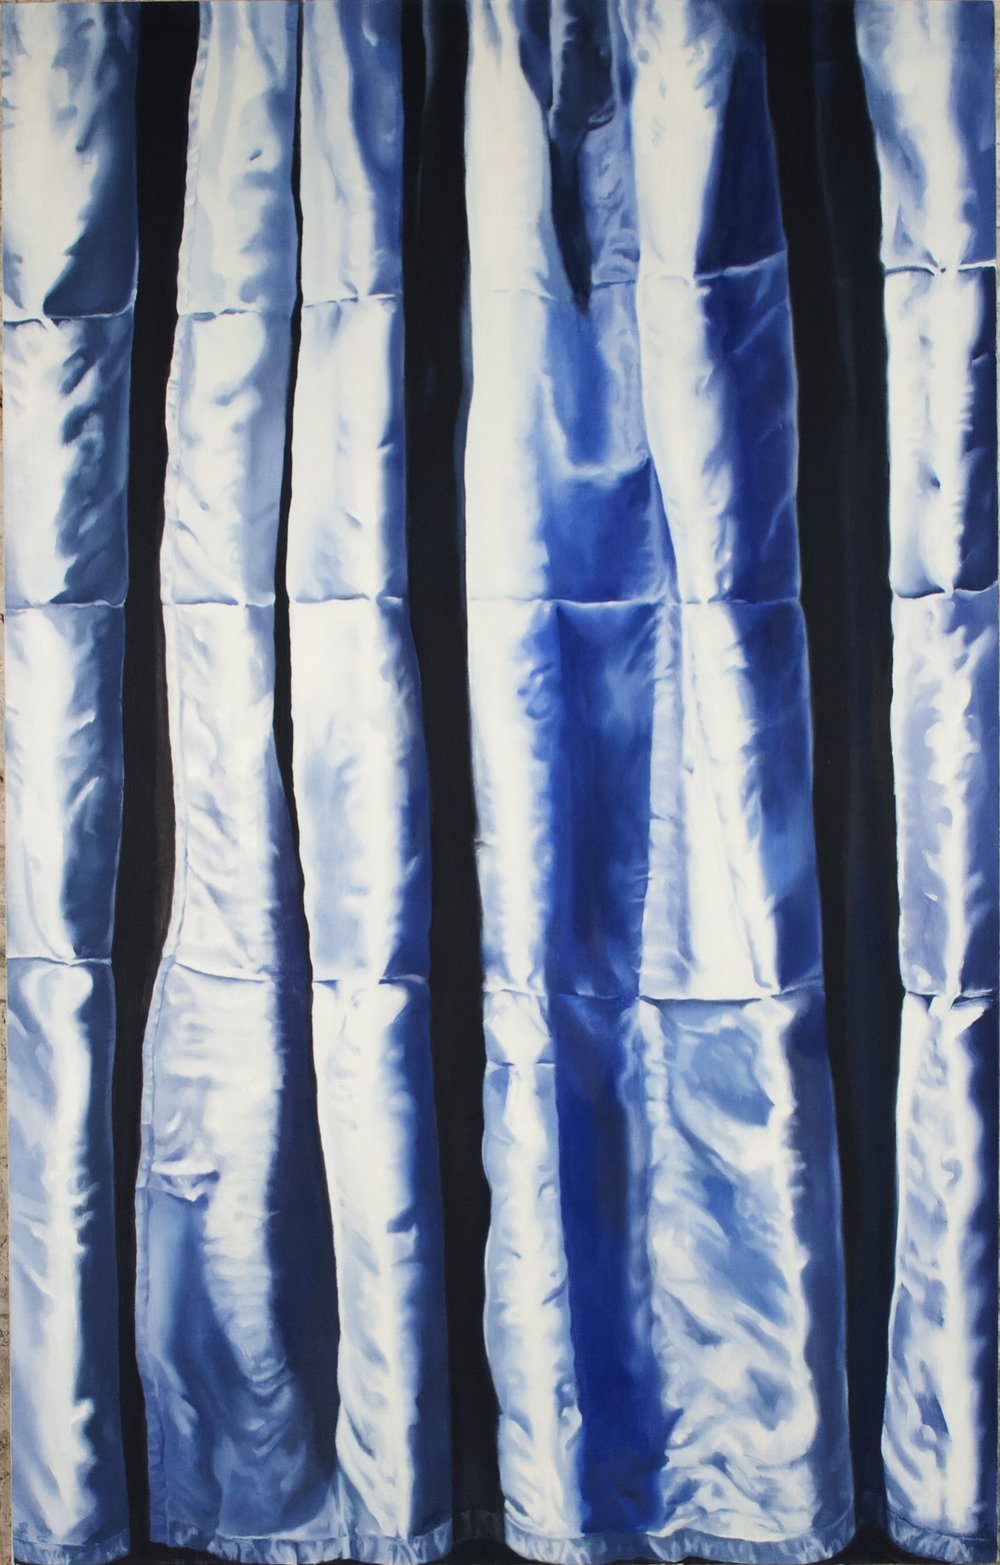 Curtain Drawn 2014 Oil on canvas 36 x 60 inches.jpg